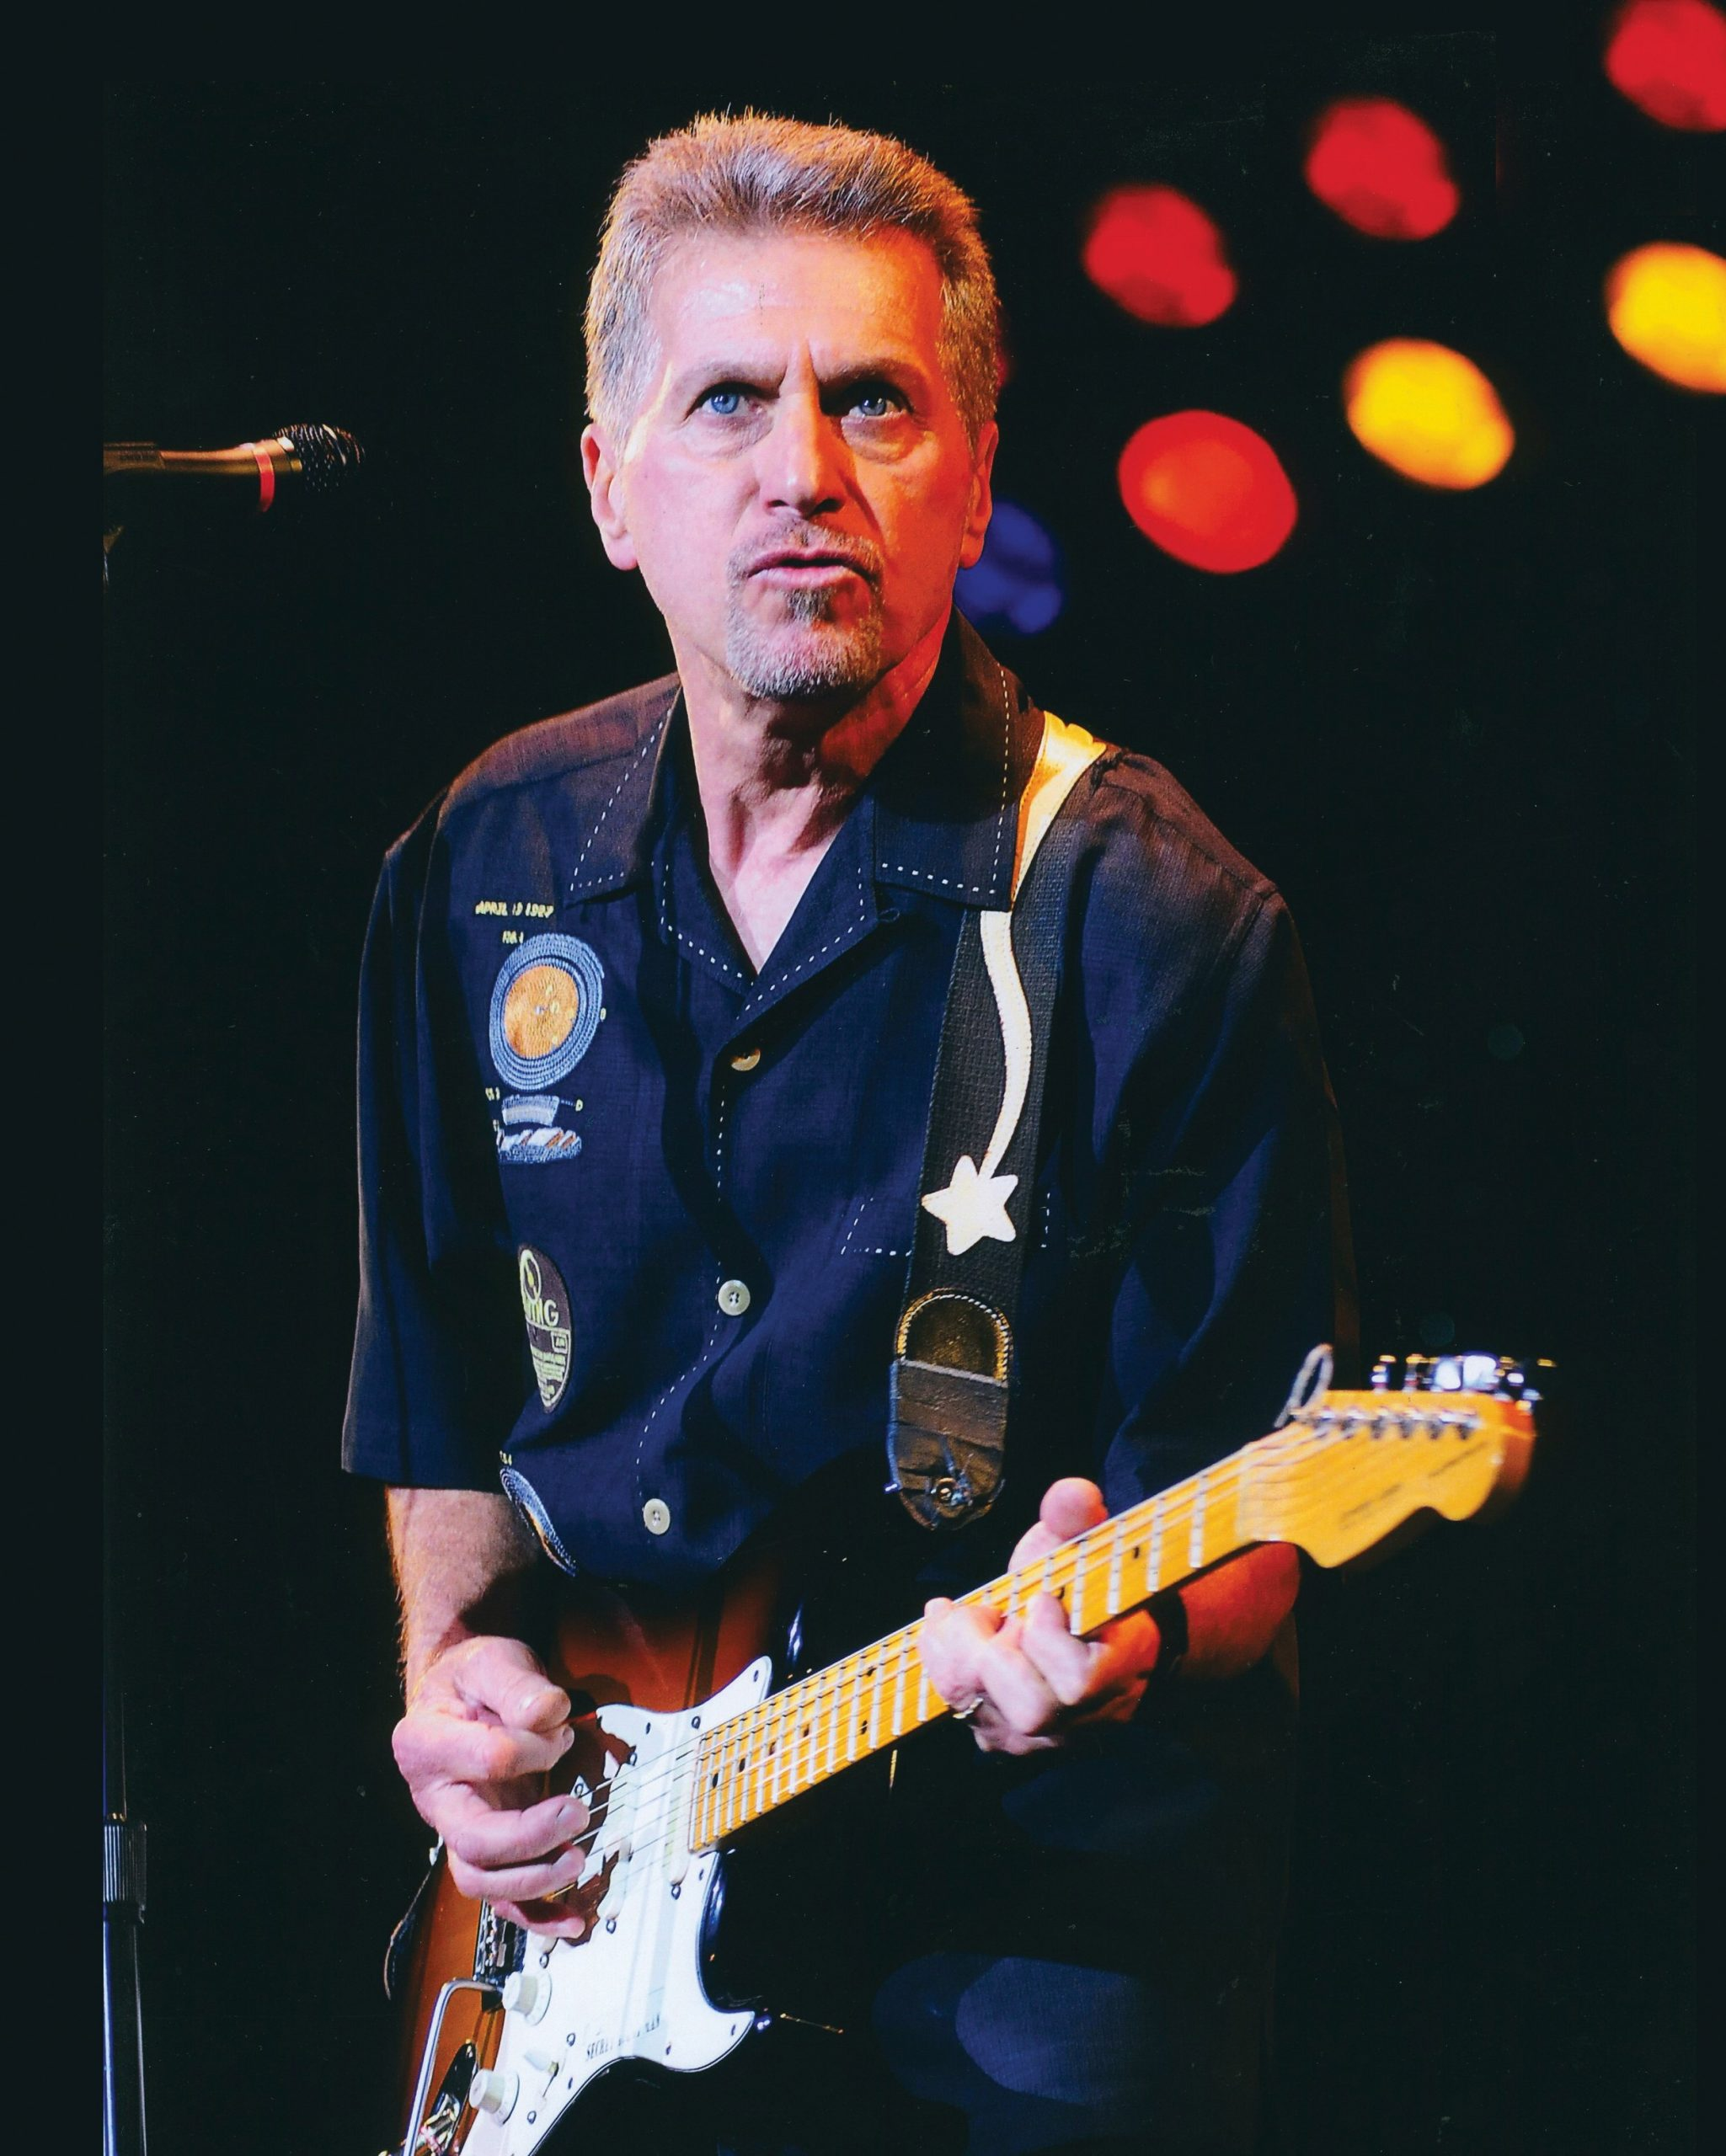 The 78-year old son of father (?) and mother(?) Johnny Rivers in 2021 photo. Johnny Rivers earned a  million dollar salary - leaving the net worth at  million in 2021